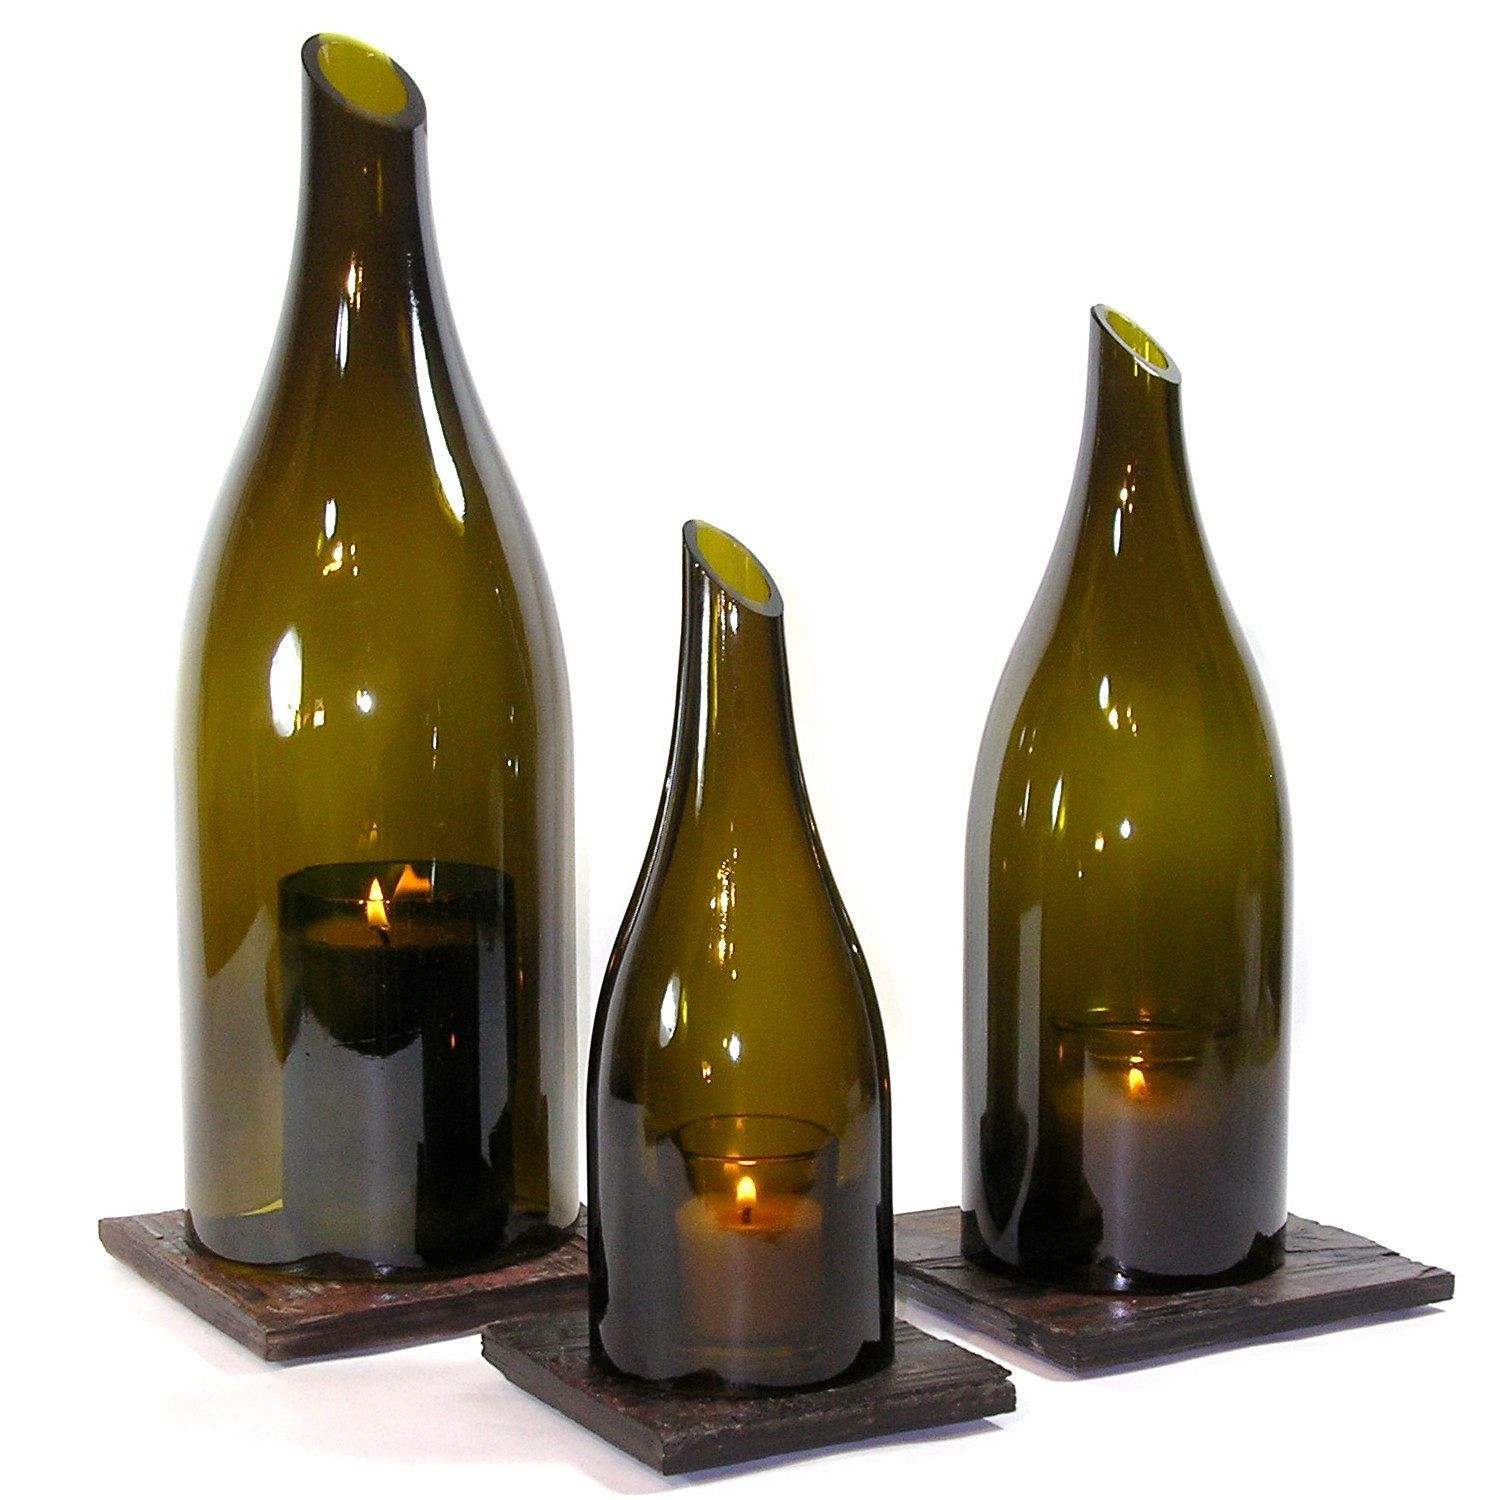 Beer Bottle Vase Of Wine Bottle Hurricane Lantern Trio Bottle Wine and Fun Diy within Wine Bottle Hurricane Lantern Trio Via Etsy